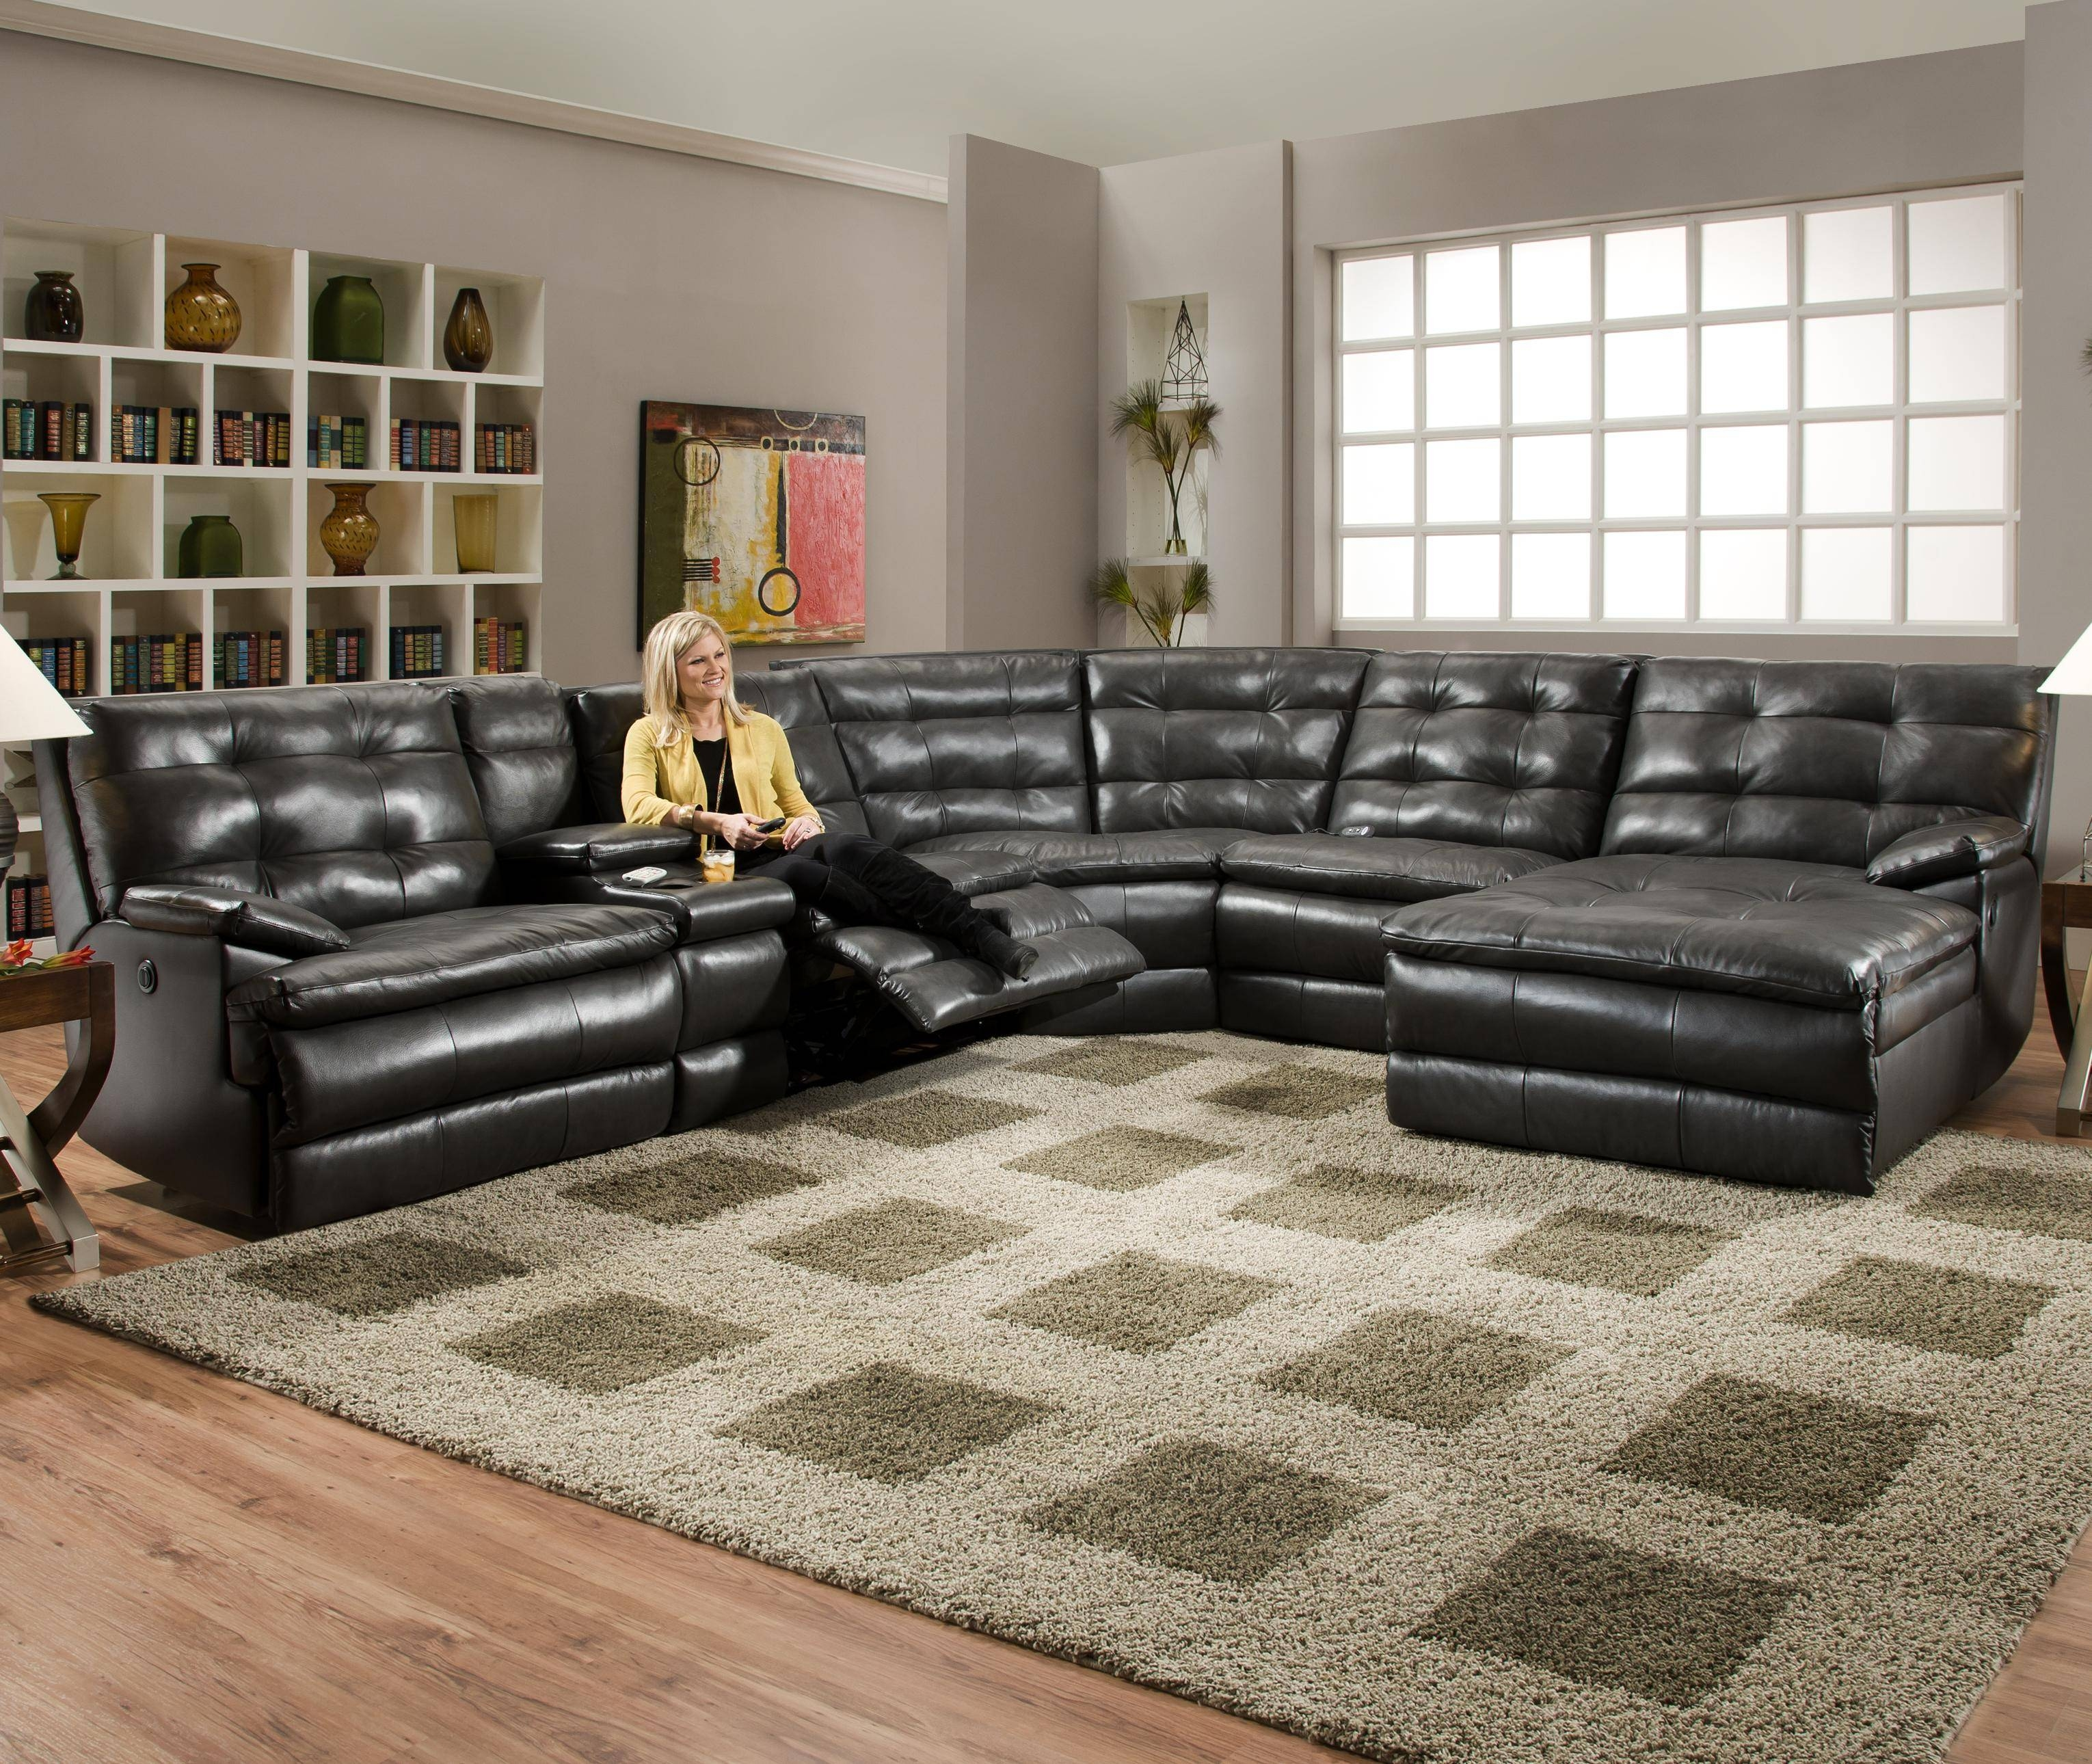 Furniture: Sofa Sectional Leather Sofa Leather Sectional Large intended for Extra Large Sectional Sofas (Image 13 of 30)